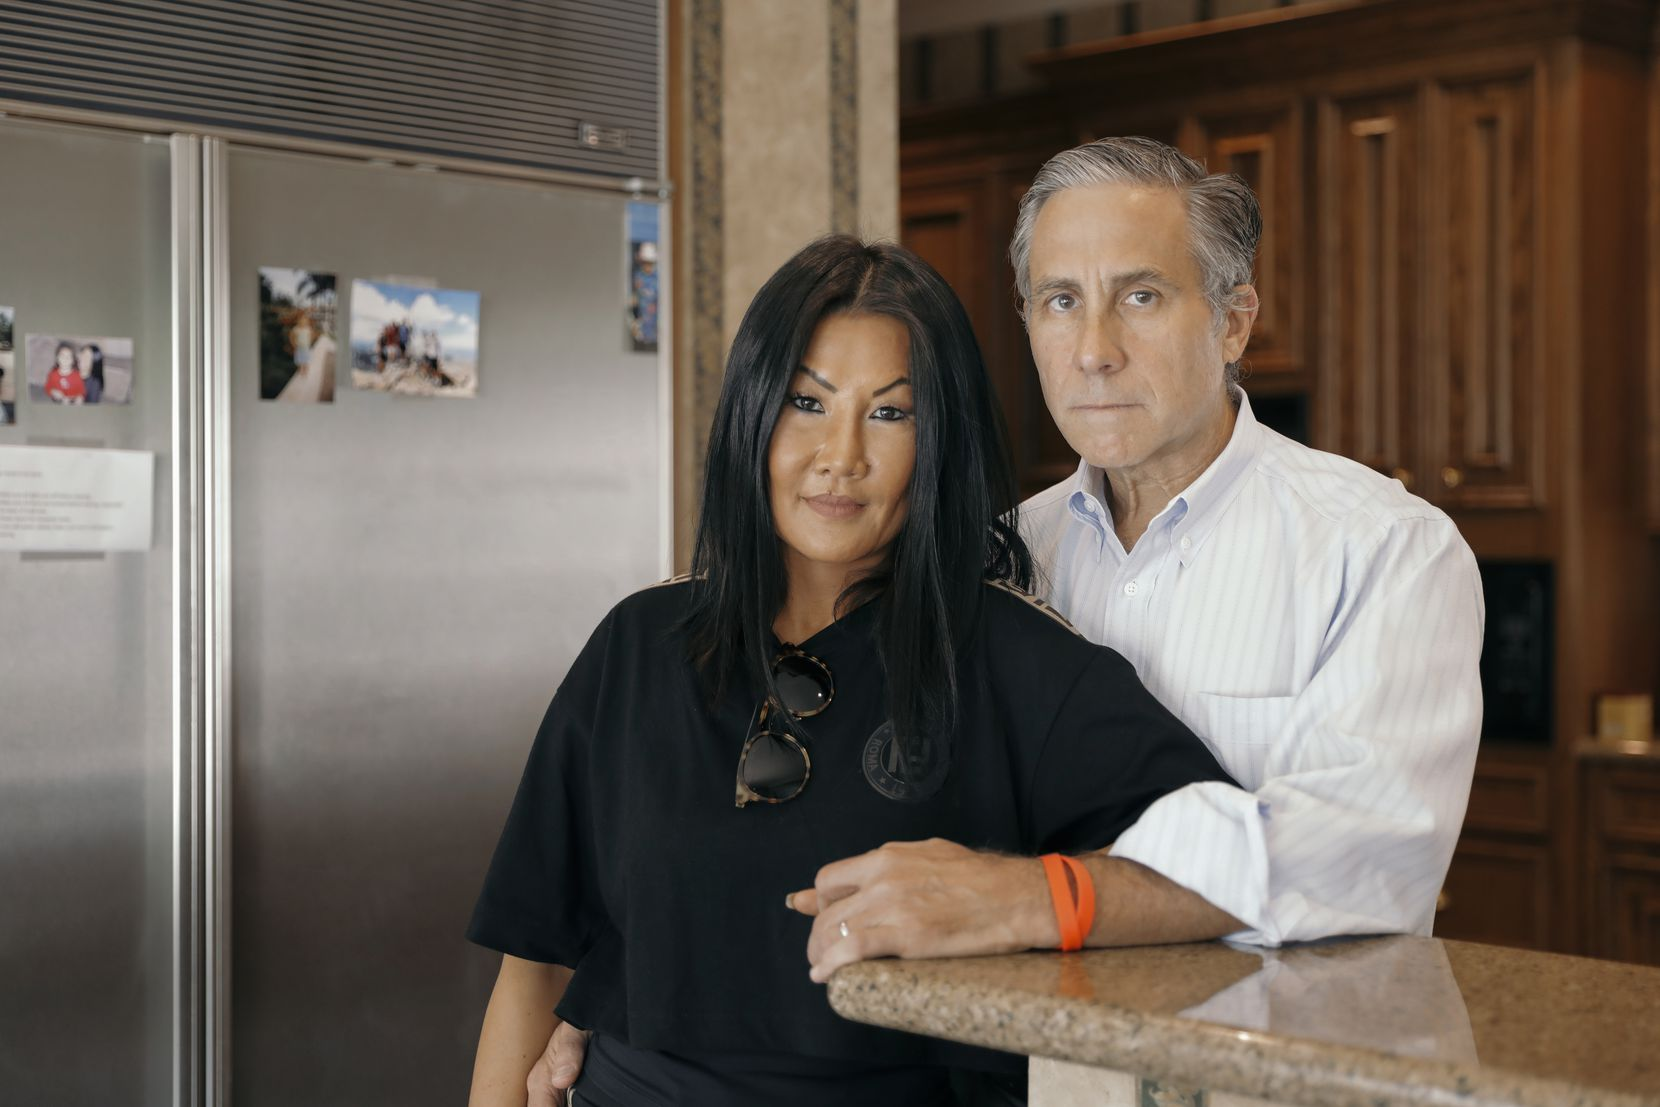 Sylvia Wang and her husband, Shawn Cumberland, at their home in Houston on Oct. 19, 2019. Their son, Nicky Cumberland, a member of the elite Texas Cowboys fraternity, died Oct. 30, 2018, from injuries sustained a month earlier on his way home from the Texas Cowboys' annual retreat.